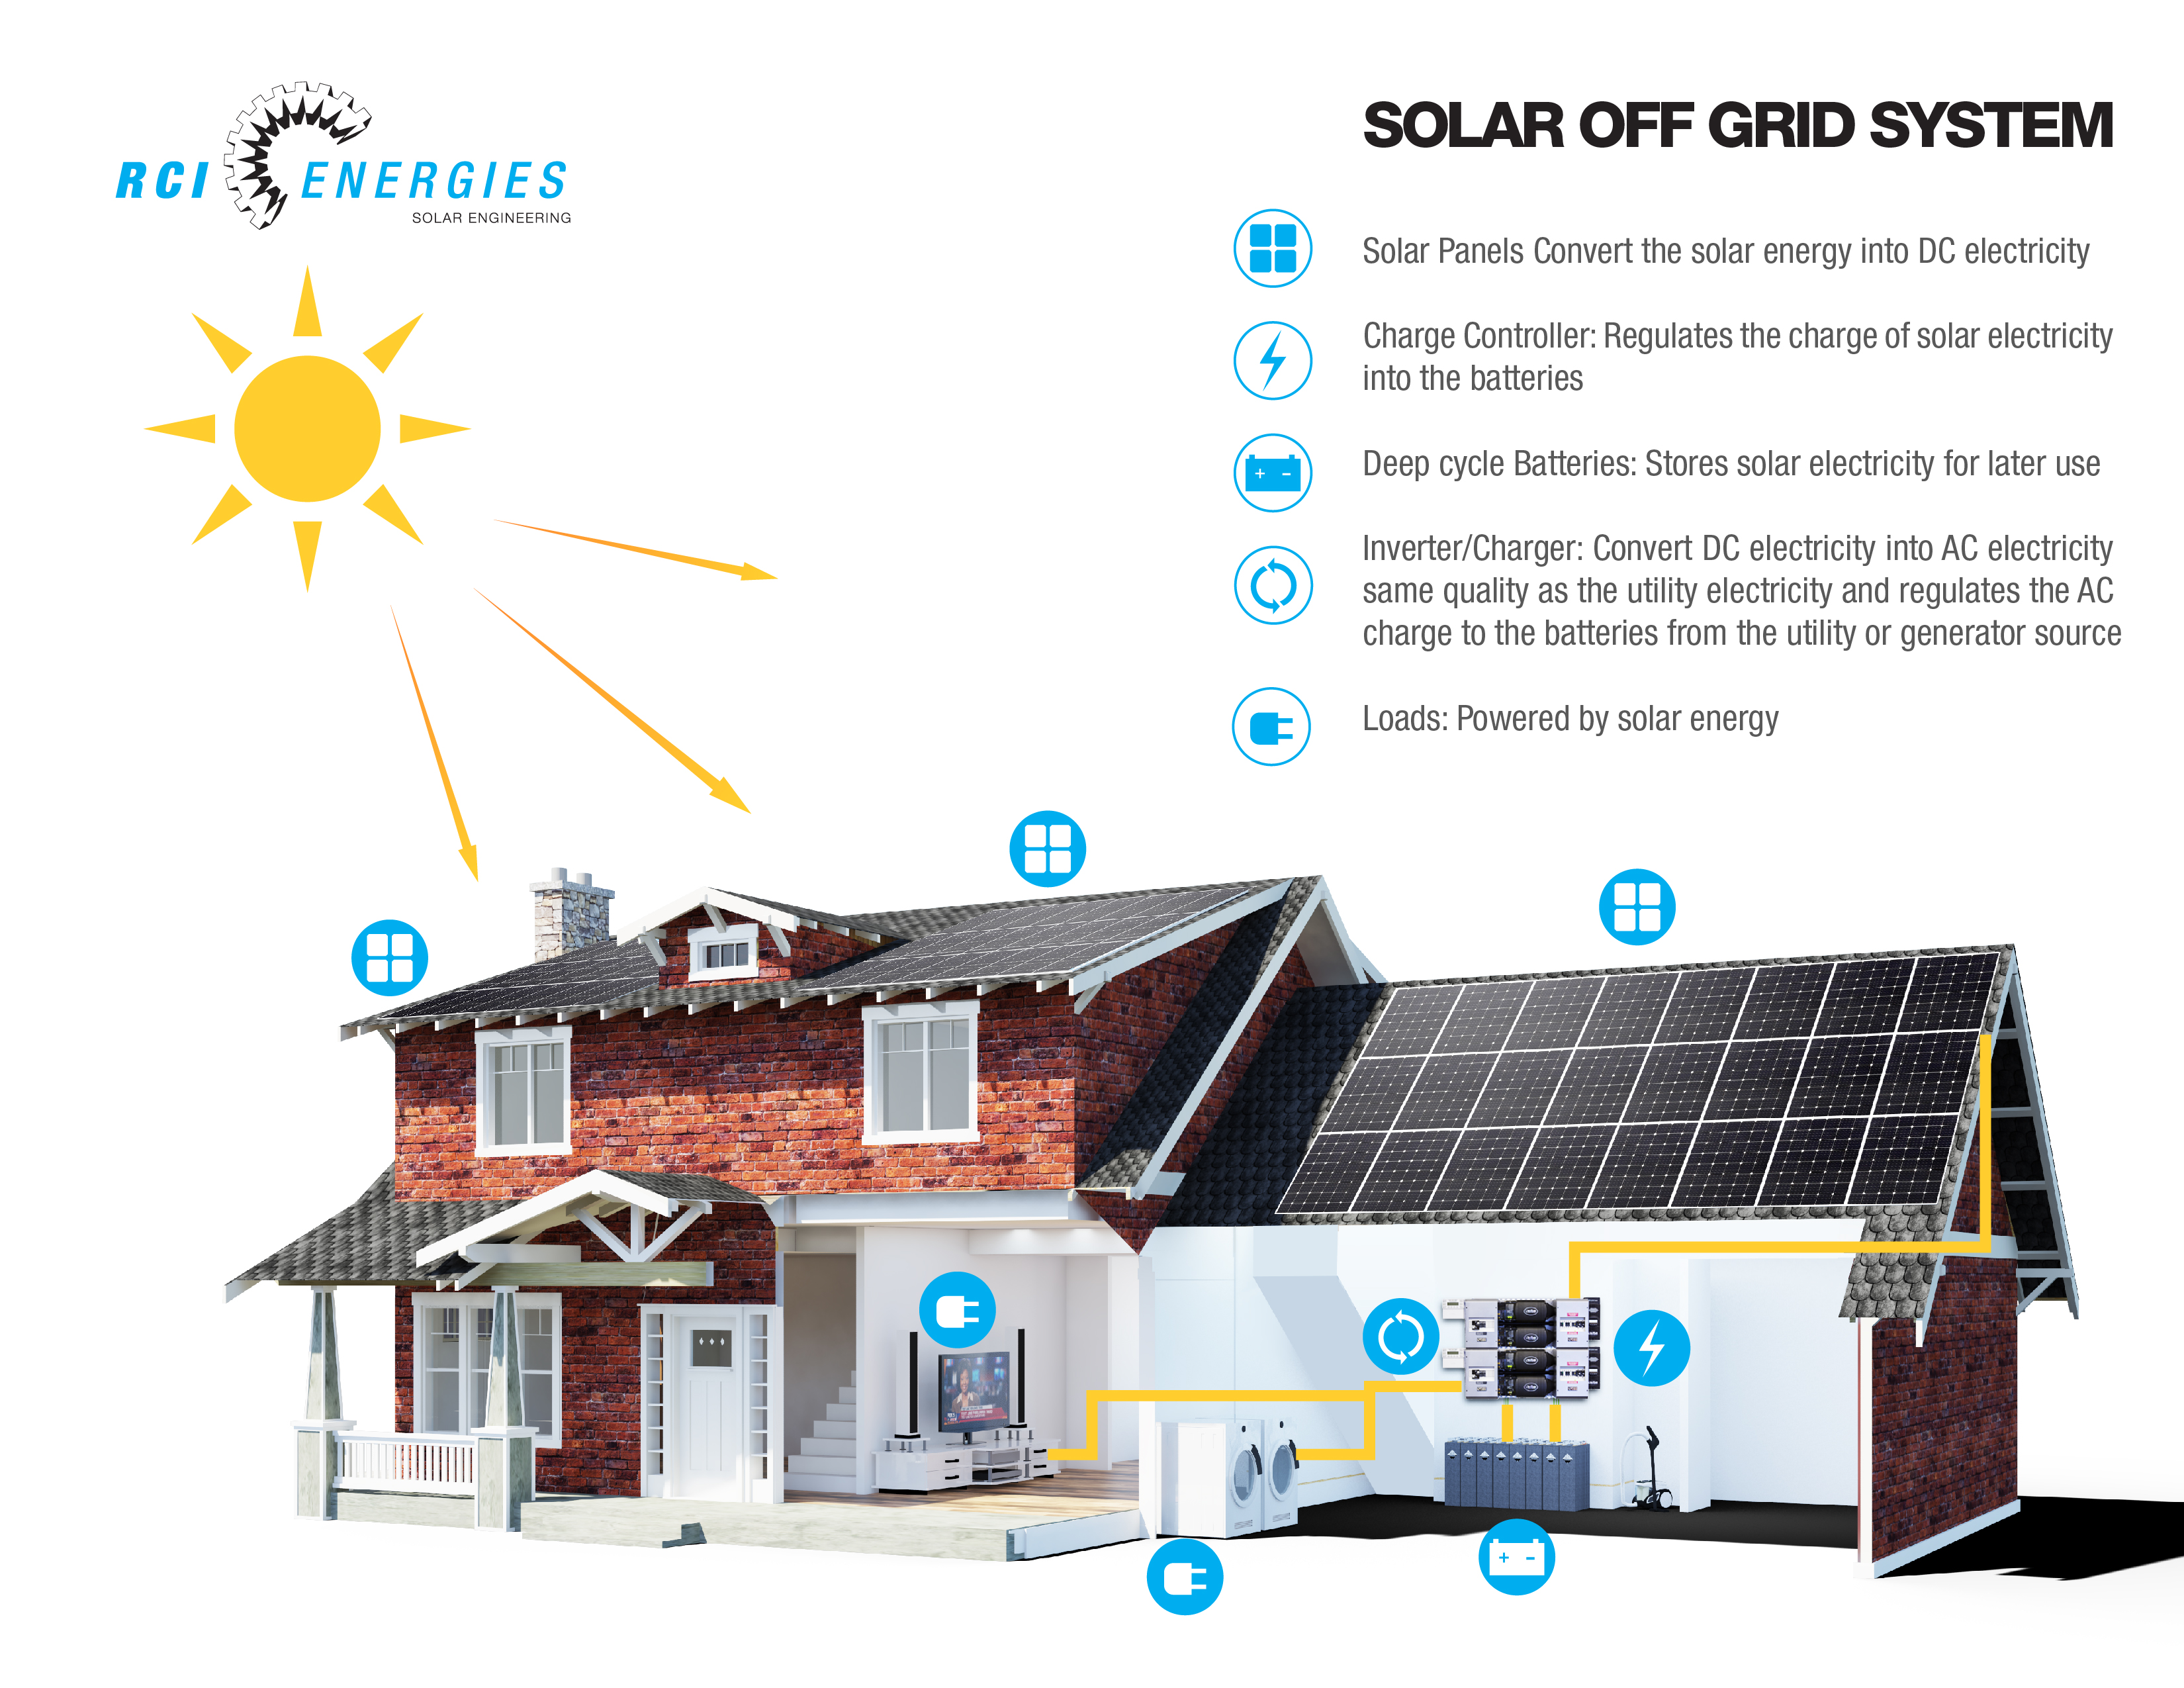 Off Grid Solar Generator Wiring Diagram Library Panel Micro Inverter As Well Series Systems When Electricity From A Utility Is Unavailable Or Connecting To The Too Expensive